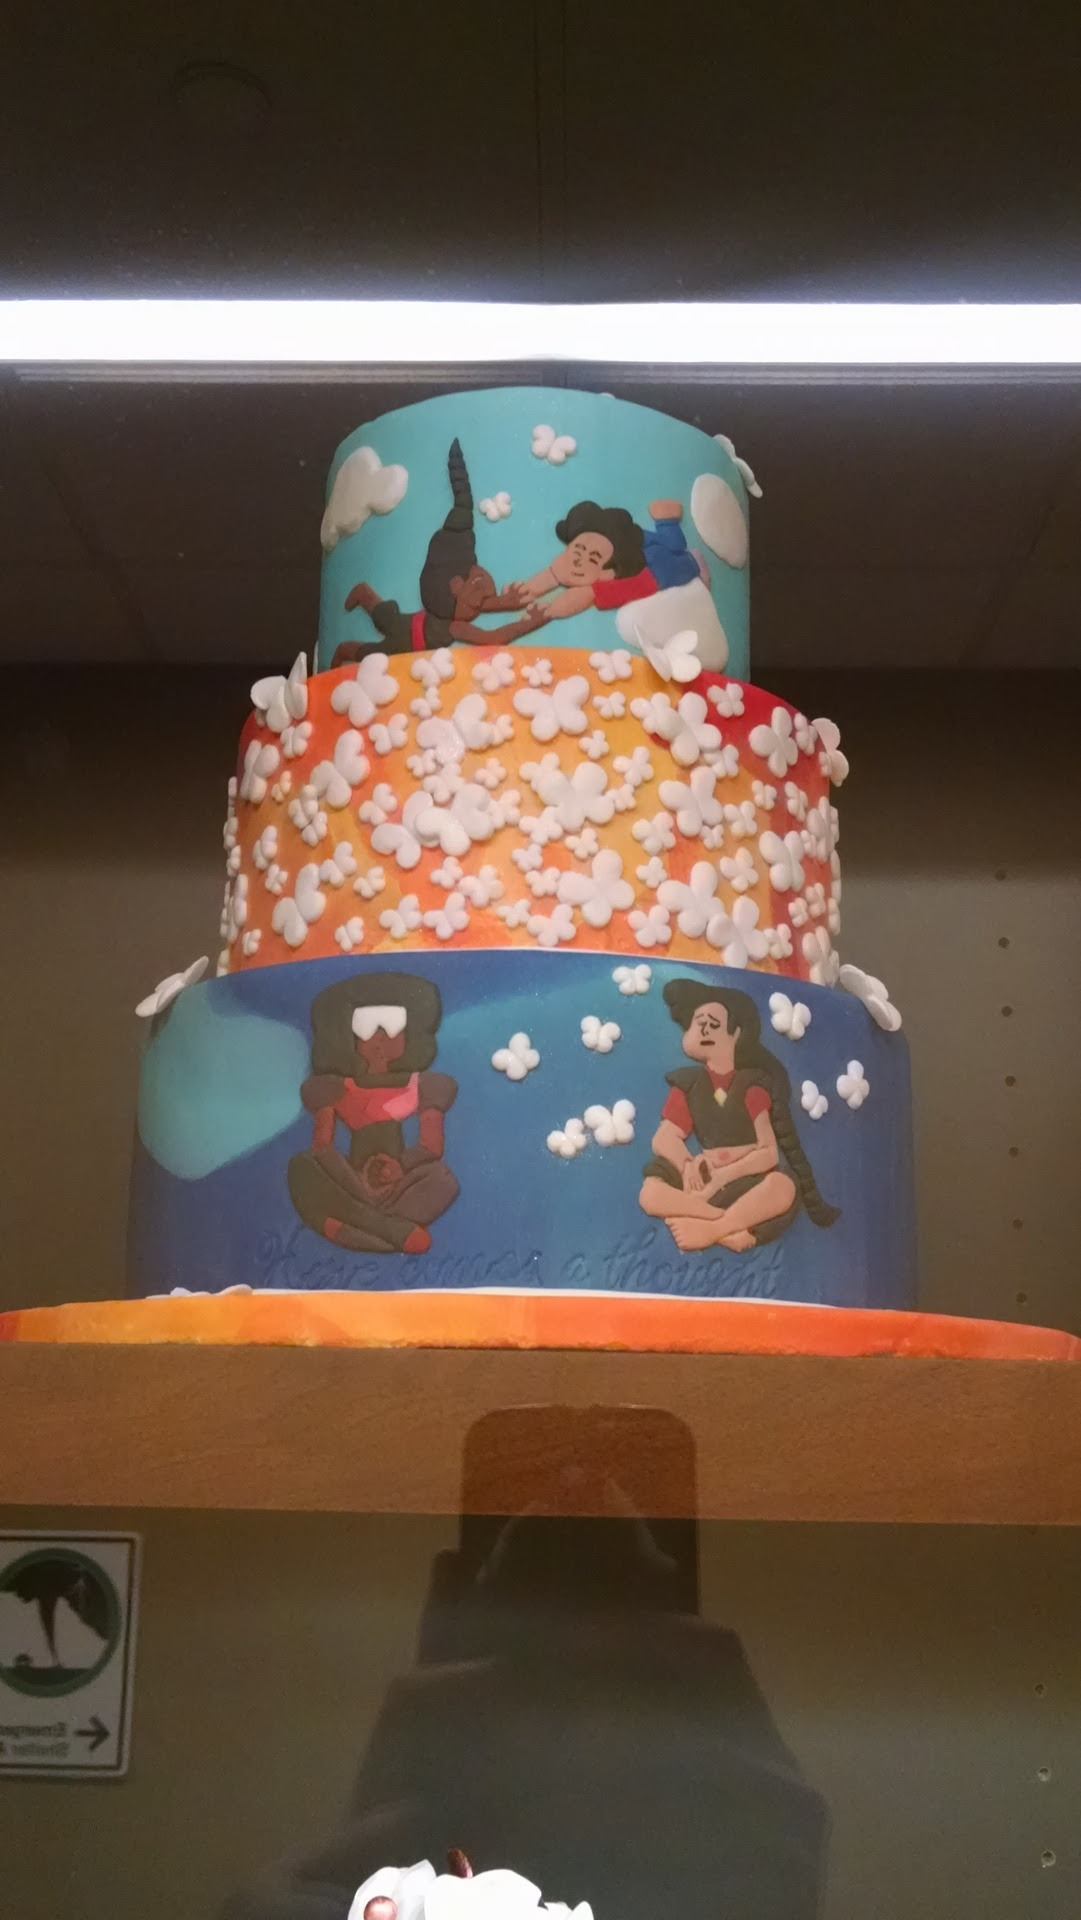 Someone at my college made a Connie/ Steven/Stevonnie/and Garnet cakeee!! Person, if you're here! Credit yourself, it's beautiful!